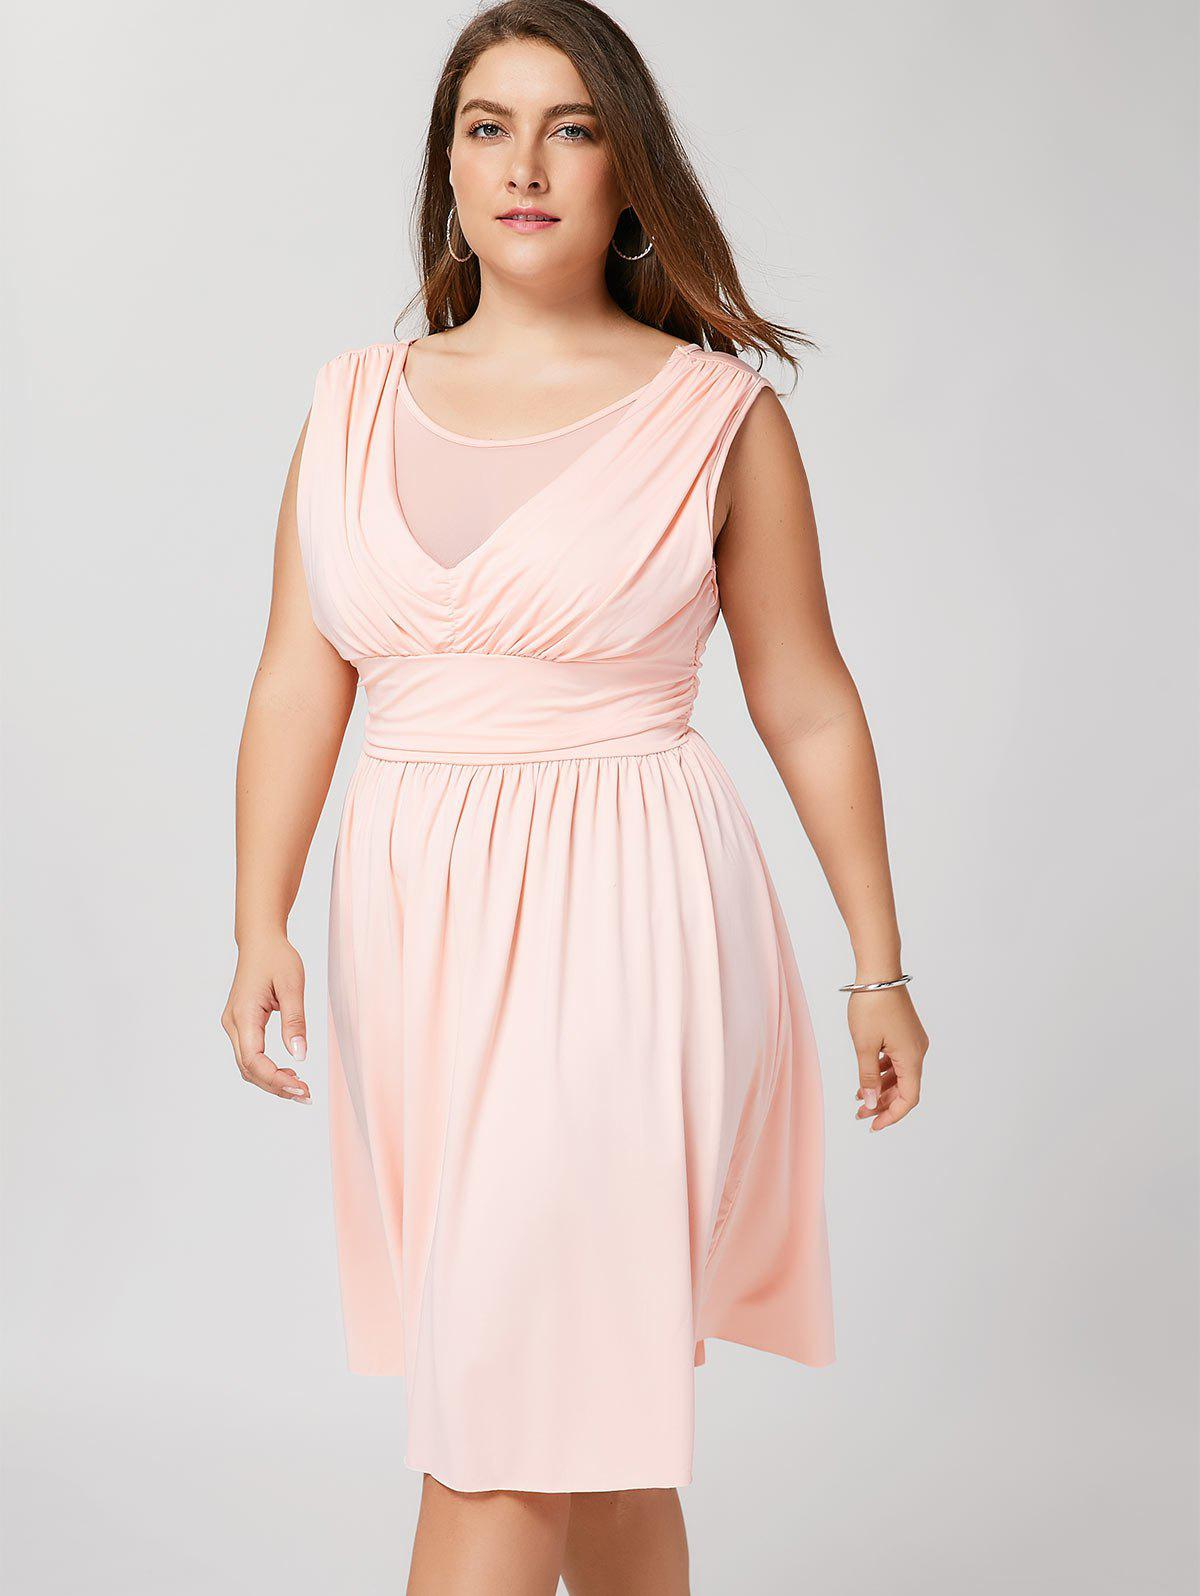 Ruched Back Low Cut Plus Size Dress